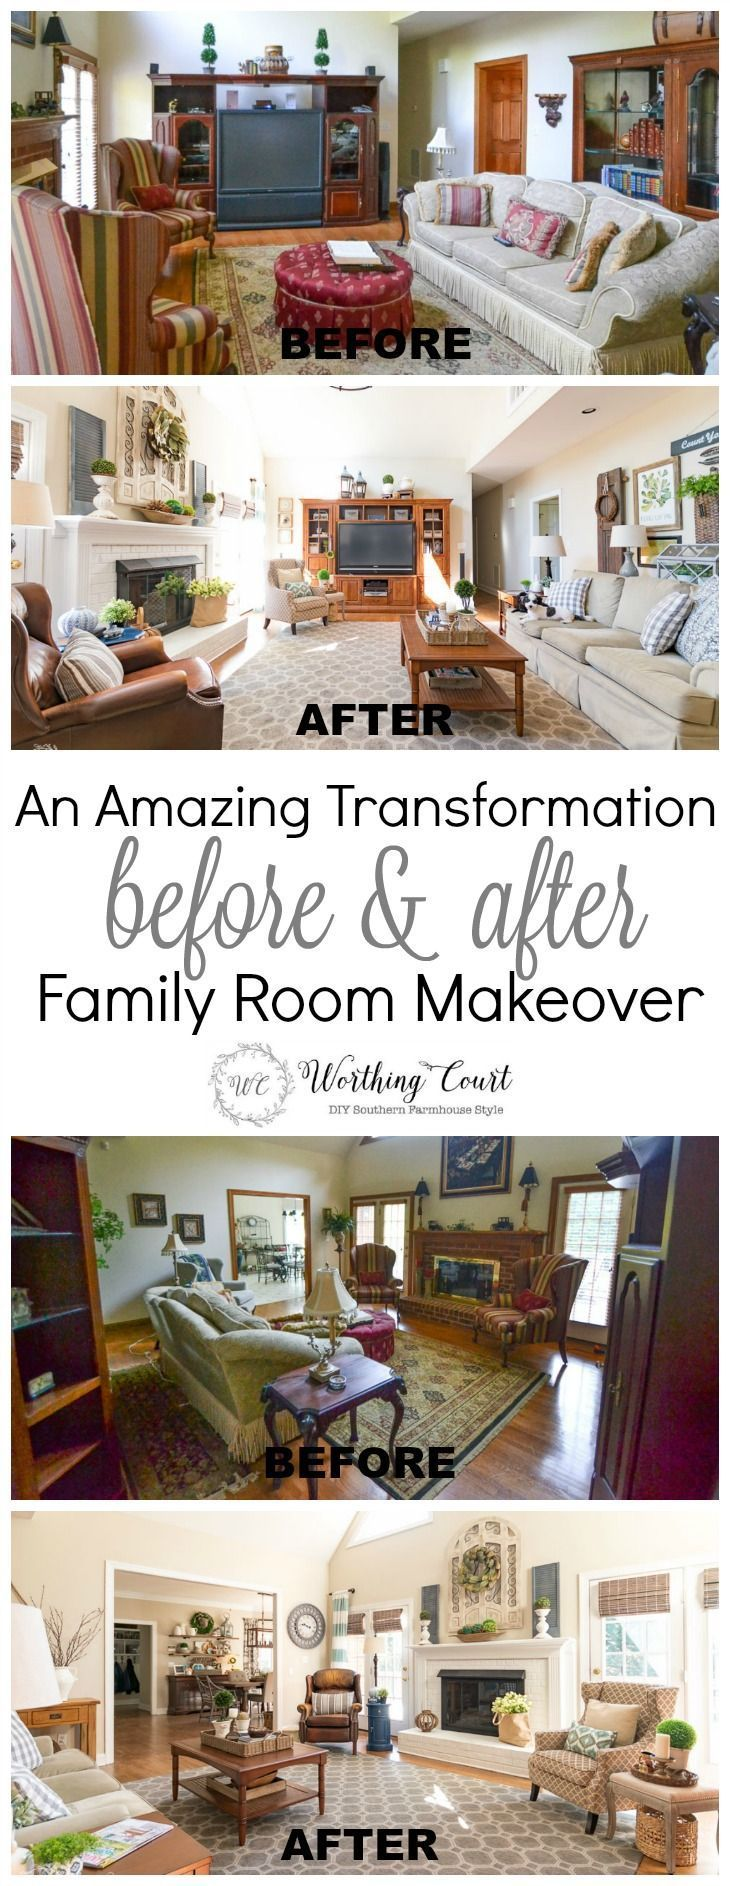 Family Room Tour – Before And After – #Family #Room #tour